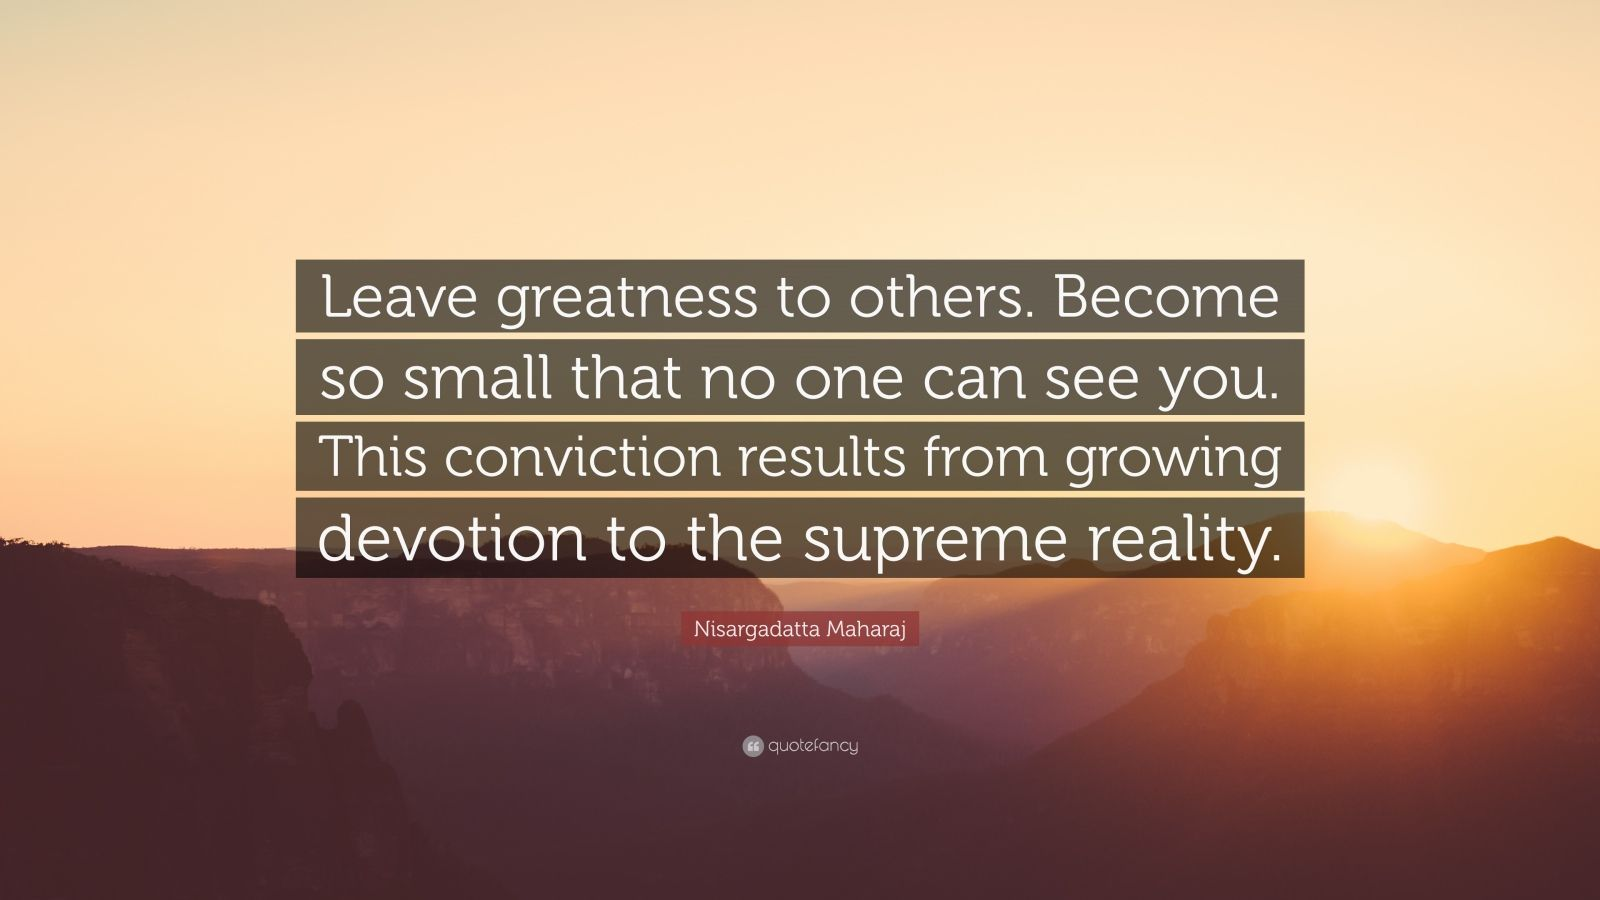 """Nisargadatta Maharaj Quote: """"Leave greatness to others. Become so small that no one can see you. This conviction results from growing devotion to the supreme reality."""""""